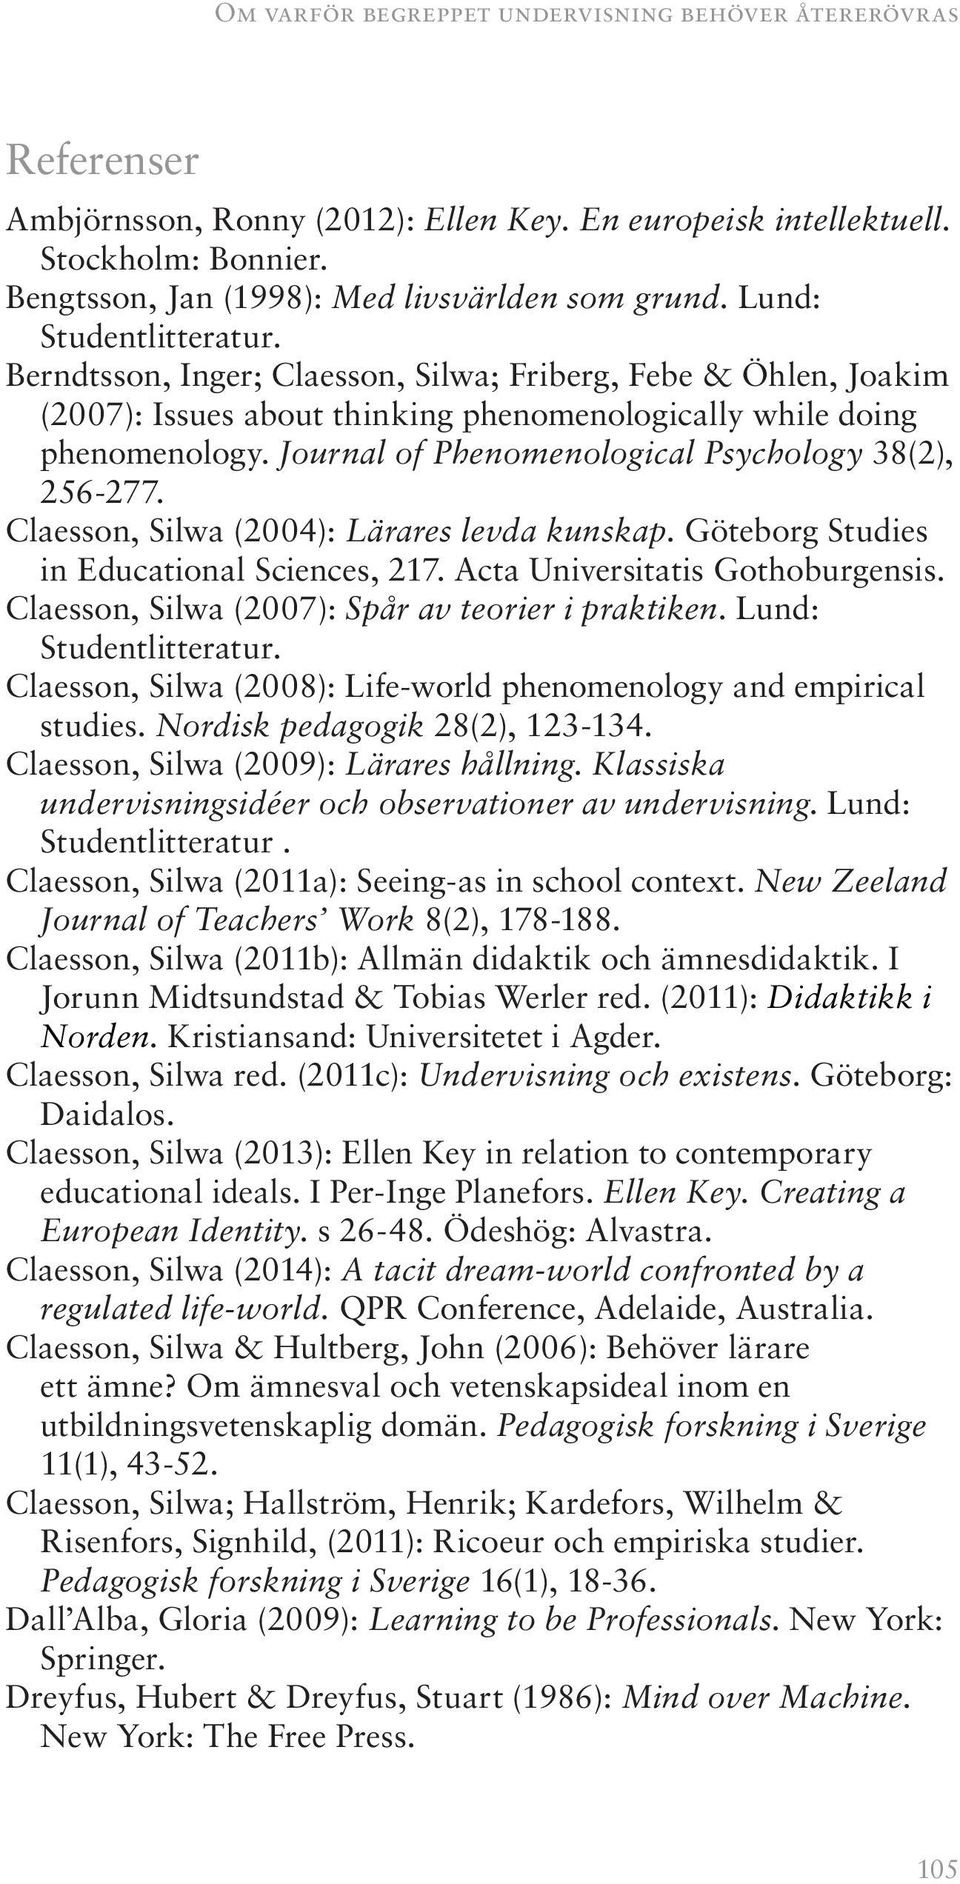 Journal of Phenomenological Psychology 38(2), 256-277. Claesson, Silwa (2004): Lärares levda kunskap. Göteborg Studies in Educational Sciences, 217. Acta Universitatis Gothoburgensis.